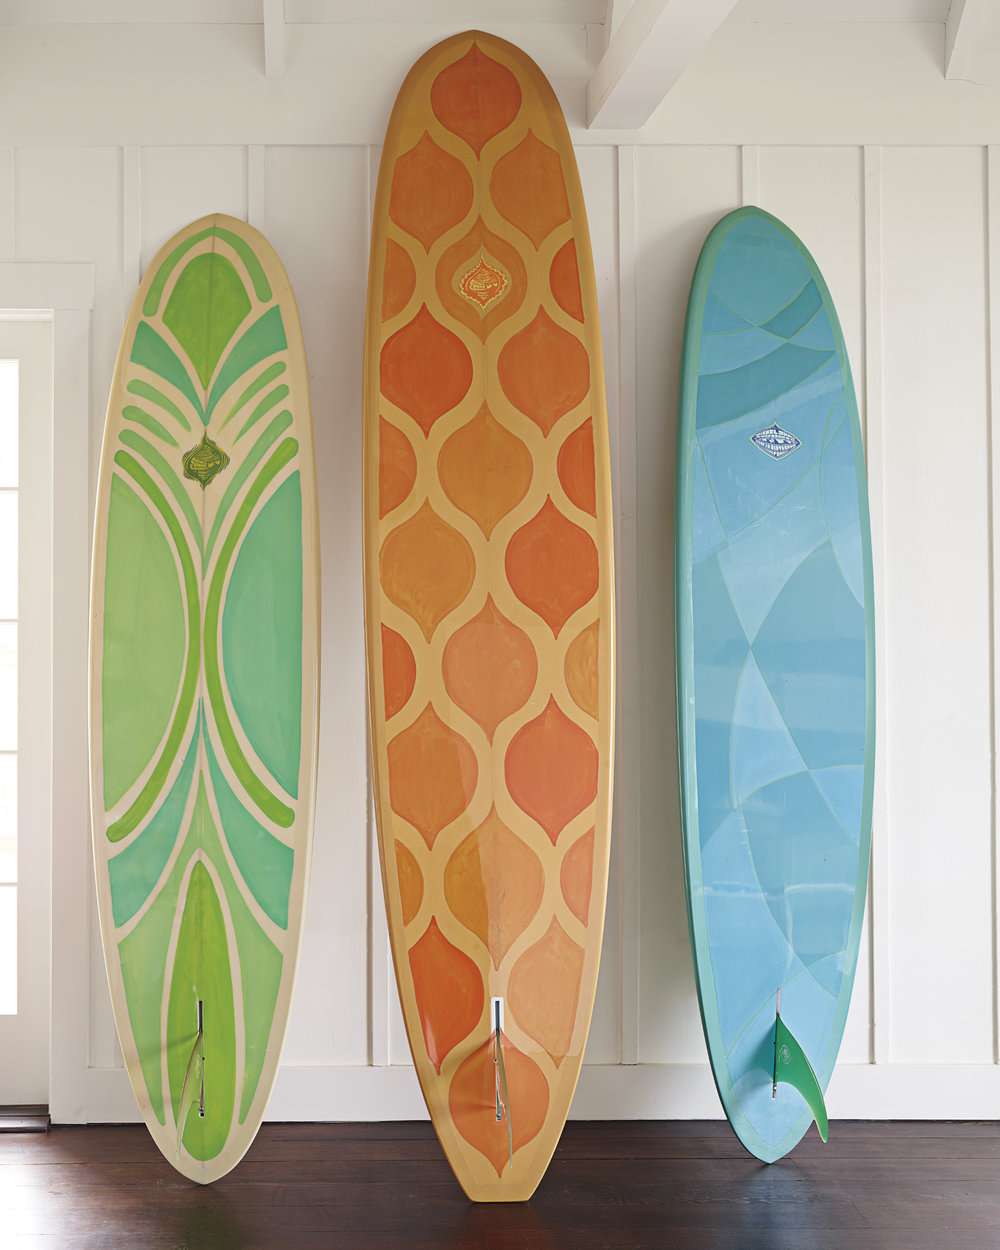 Serena & Lily Beach Market, Wainscott, NY.  Montauk Highway.  Surfboard close-up.